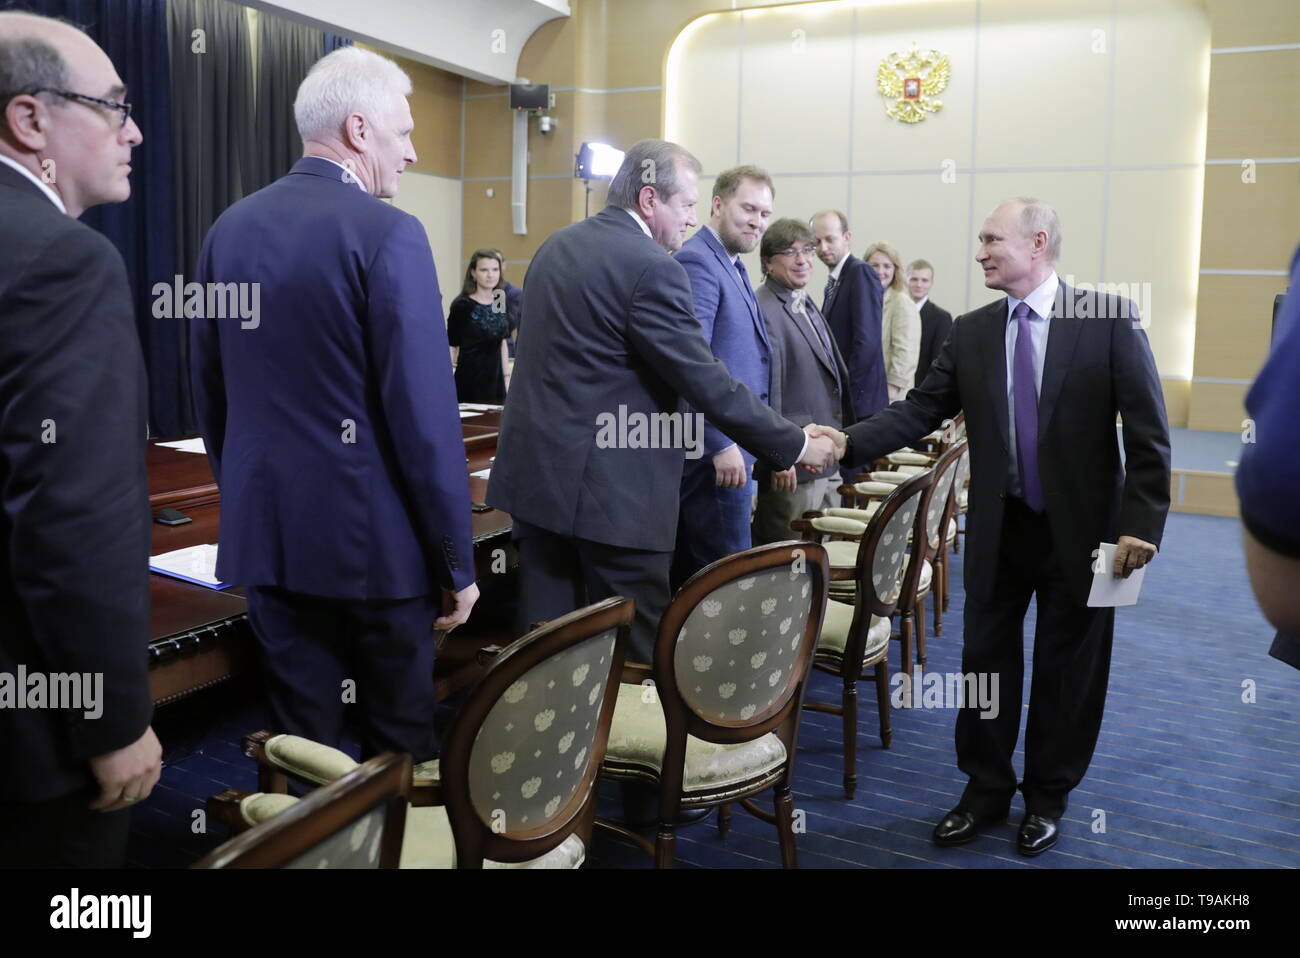 Sochi, Russia. 17th May, 2019. SOCHI, RUSSIA - MAY 17, 2019: Alexander Kabanov, an honoured professor at the University of North Carolina (USA), Russian Presidential Aide Andrei Fursenko, Konstantin Krutovsky, professor of Genetics at the University of Gottingen (Germany), Bauman Moscow State Technical University Laboratory head Vladimir Lazarev, and Russia's President Vladimir Putin (L-R) during a meeting with the winners of 'megagrants' for scientific research. Mikhail Metzel/TASS Credit: ITAR-TASS News Agency/Alamy Live News Stock Photo